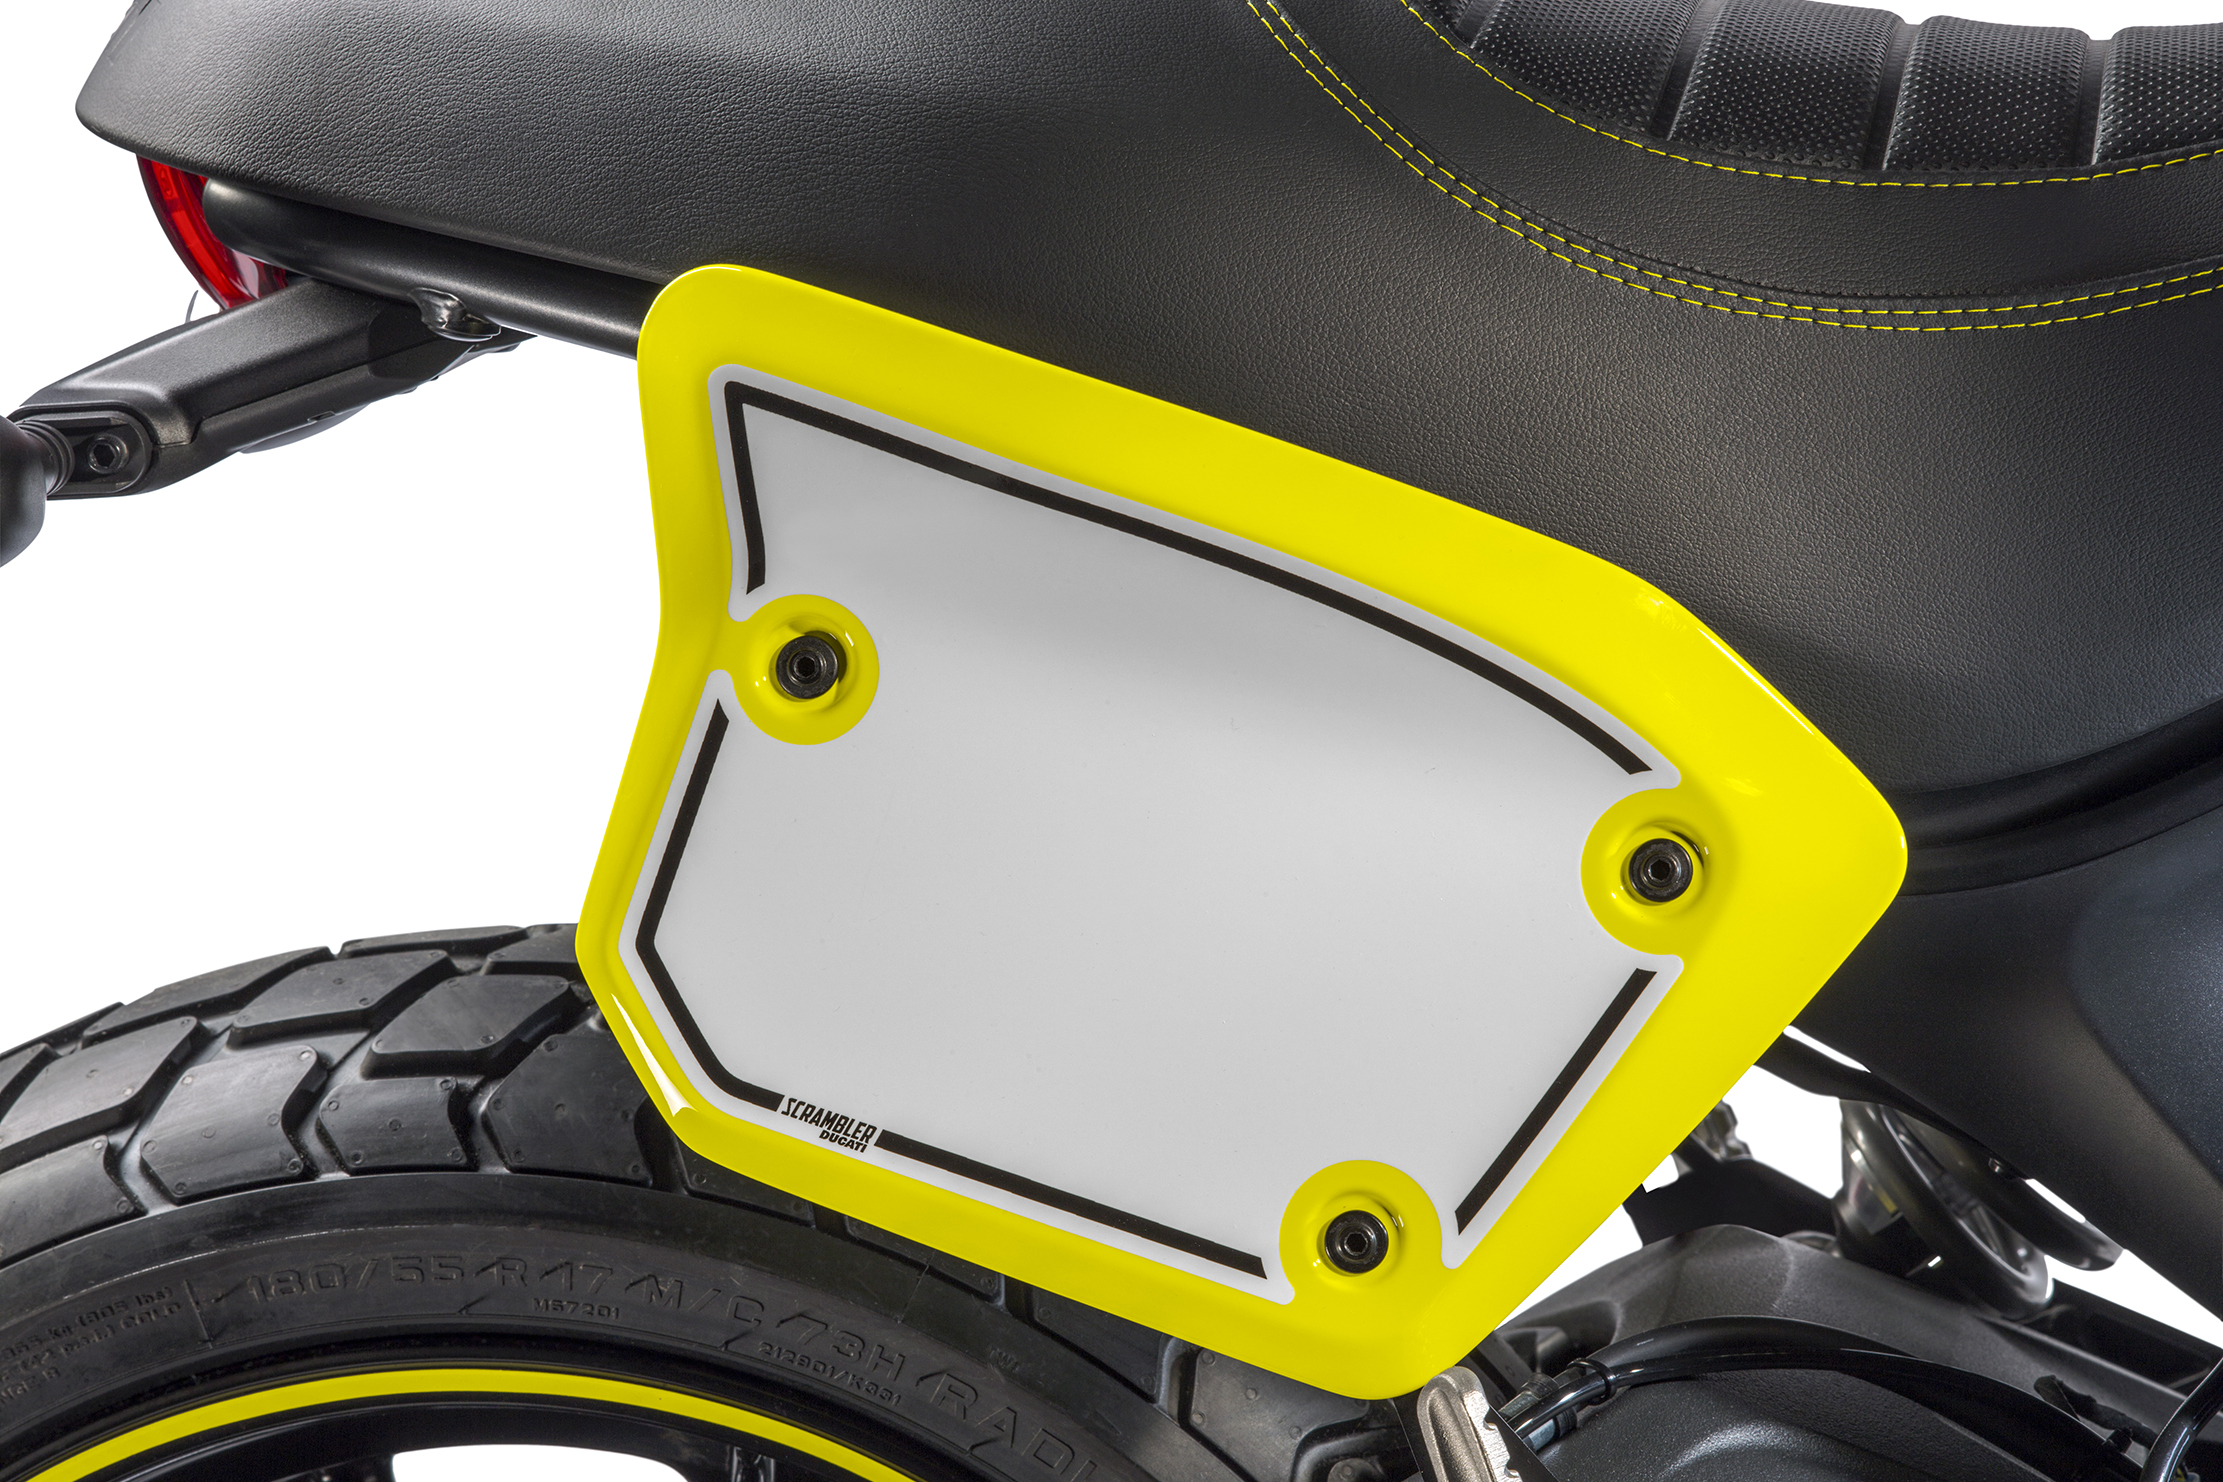 Ducati introduces not one, but two new Scramblers for 2016